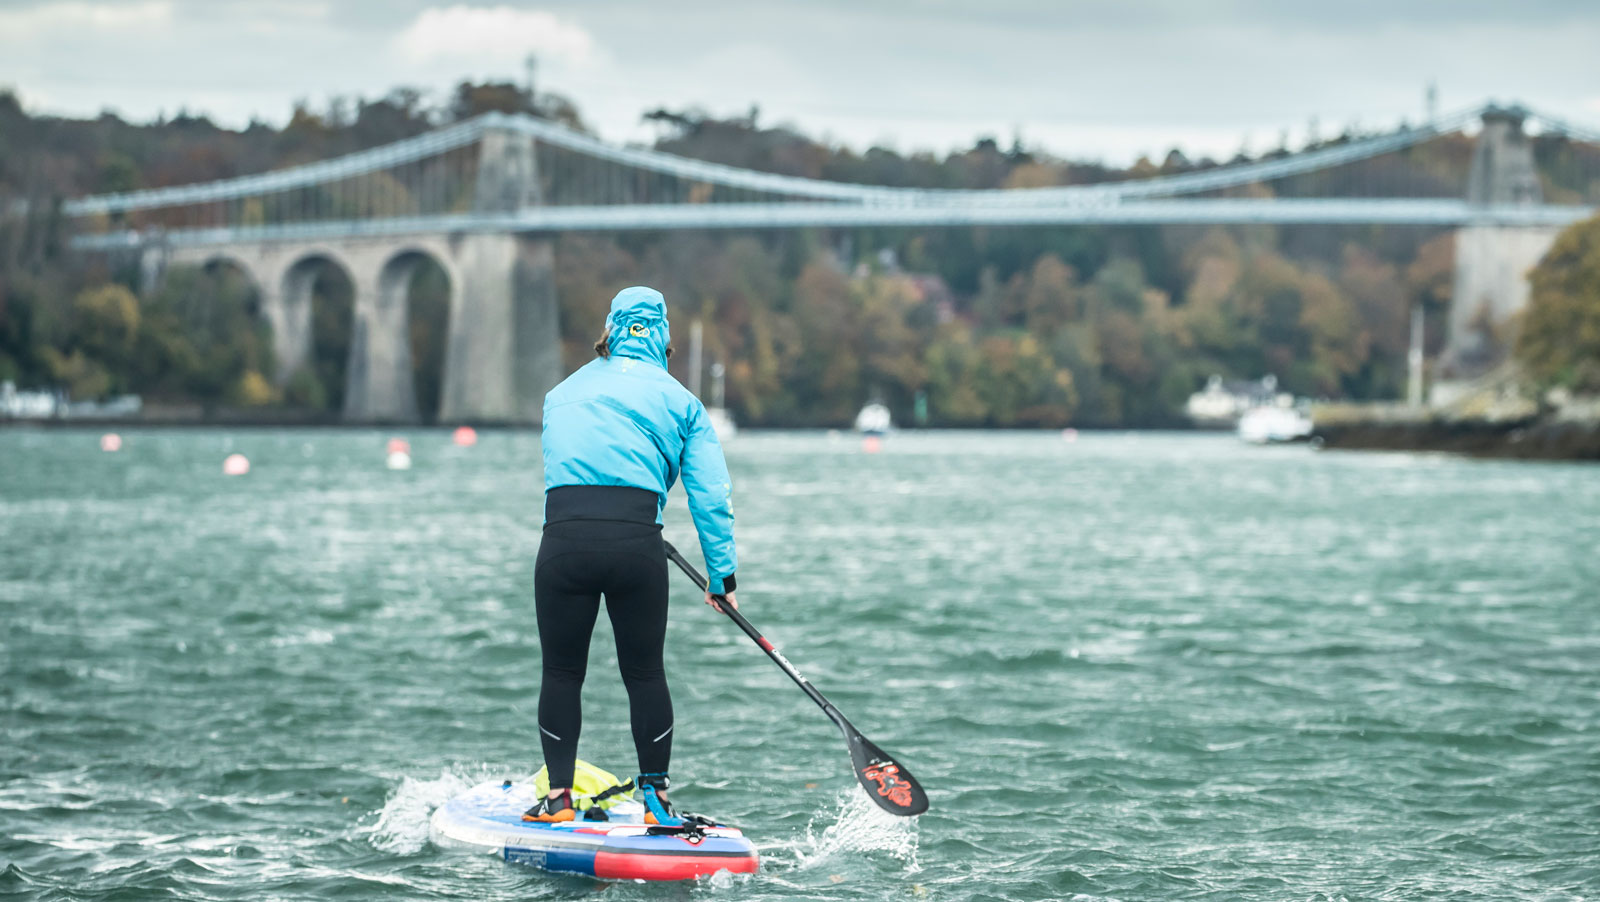 Starboard-SUP-Paddle-board-Ocean-Ambassador-Cleaning-Up-with-with-Eco-Warrior-Sian-Sykes-Porsche-Cayenne-E-Hybrid-paddling